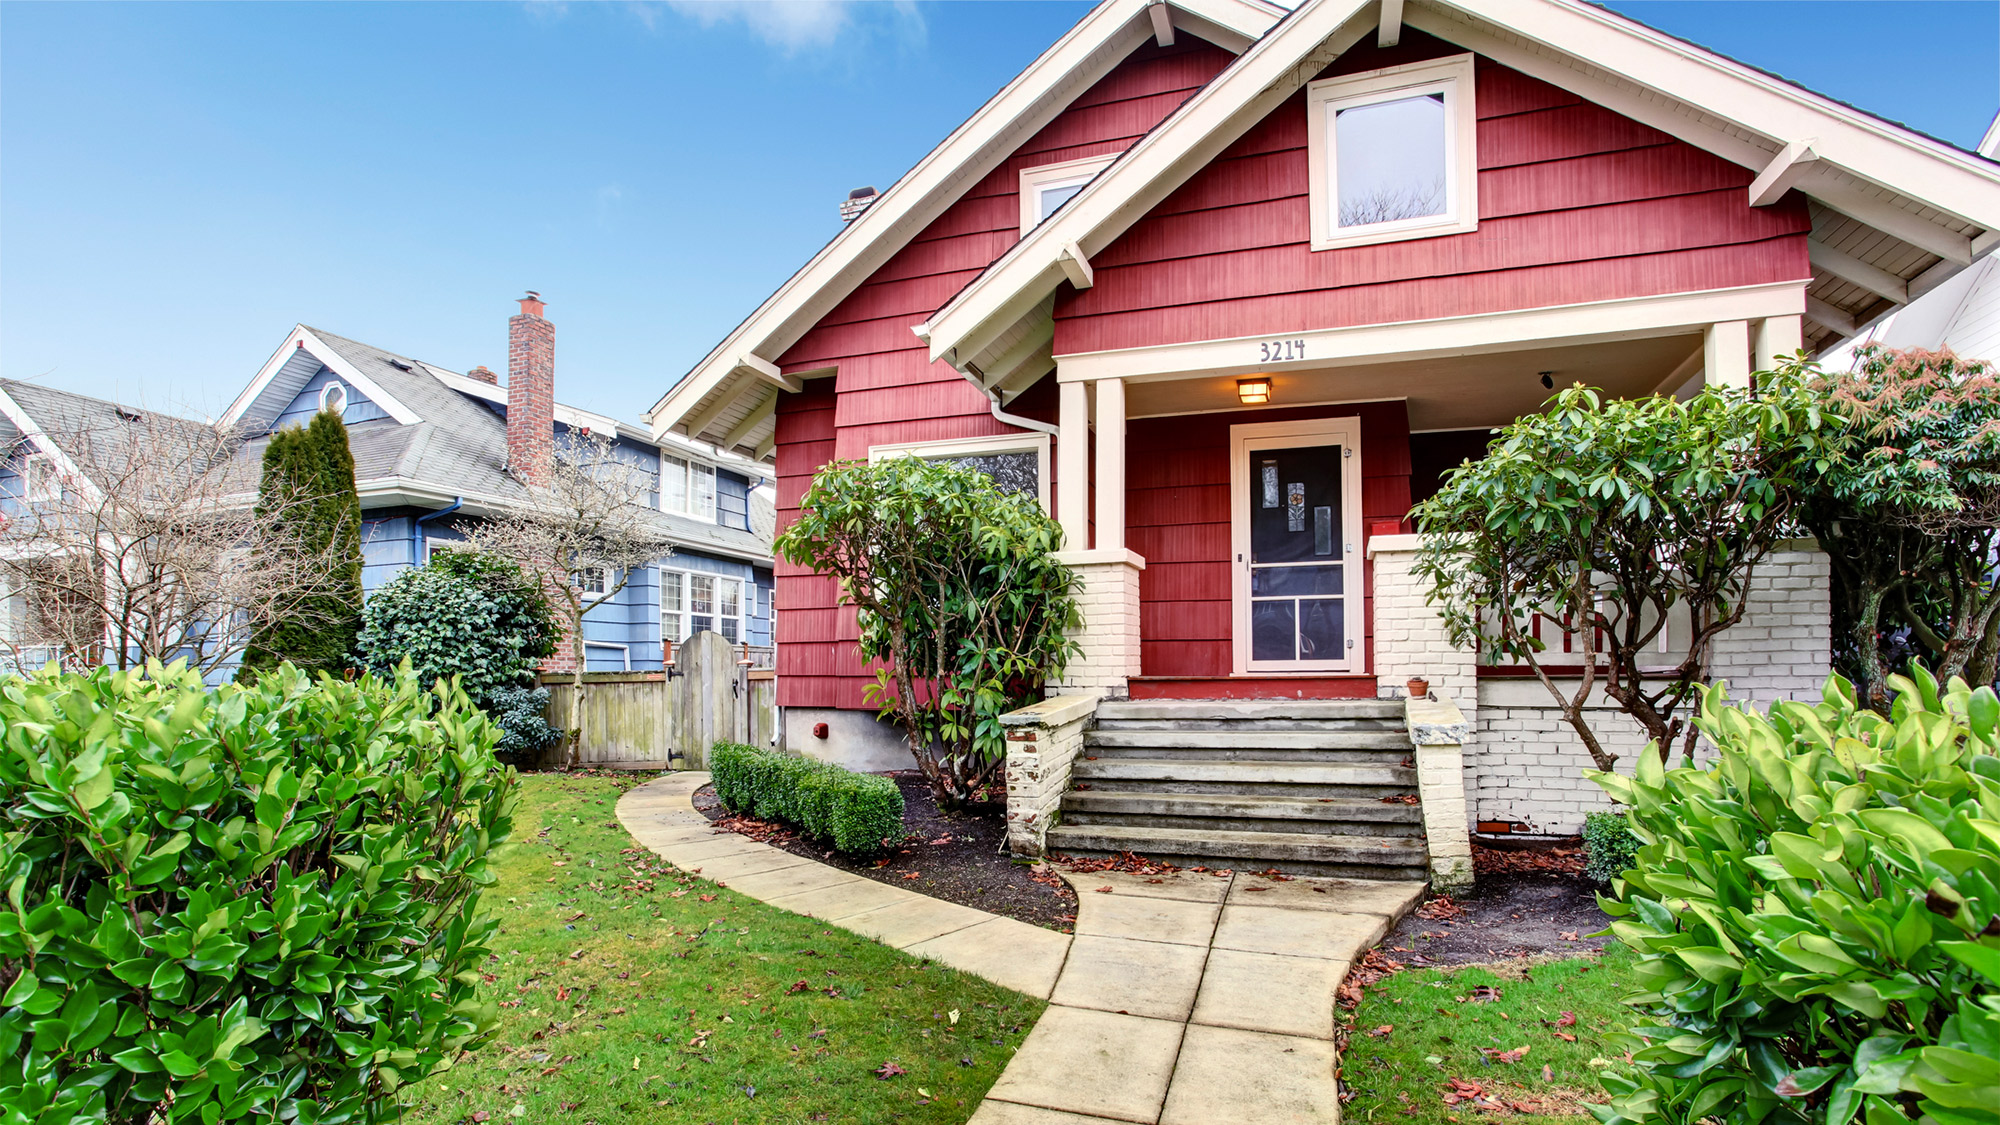 5 reasons why buying an old house is a great idea